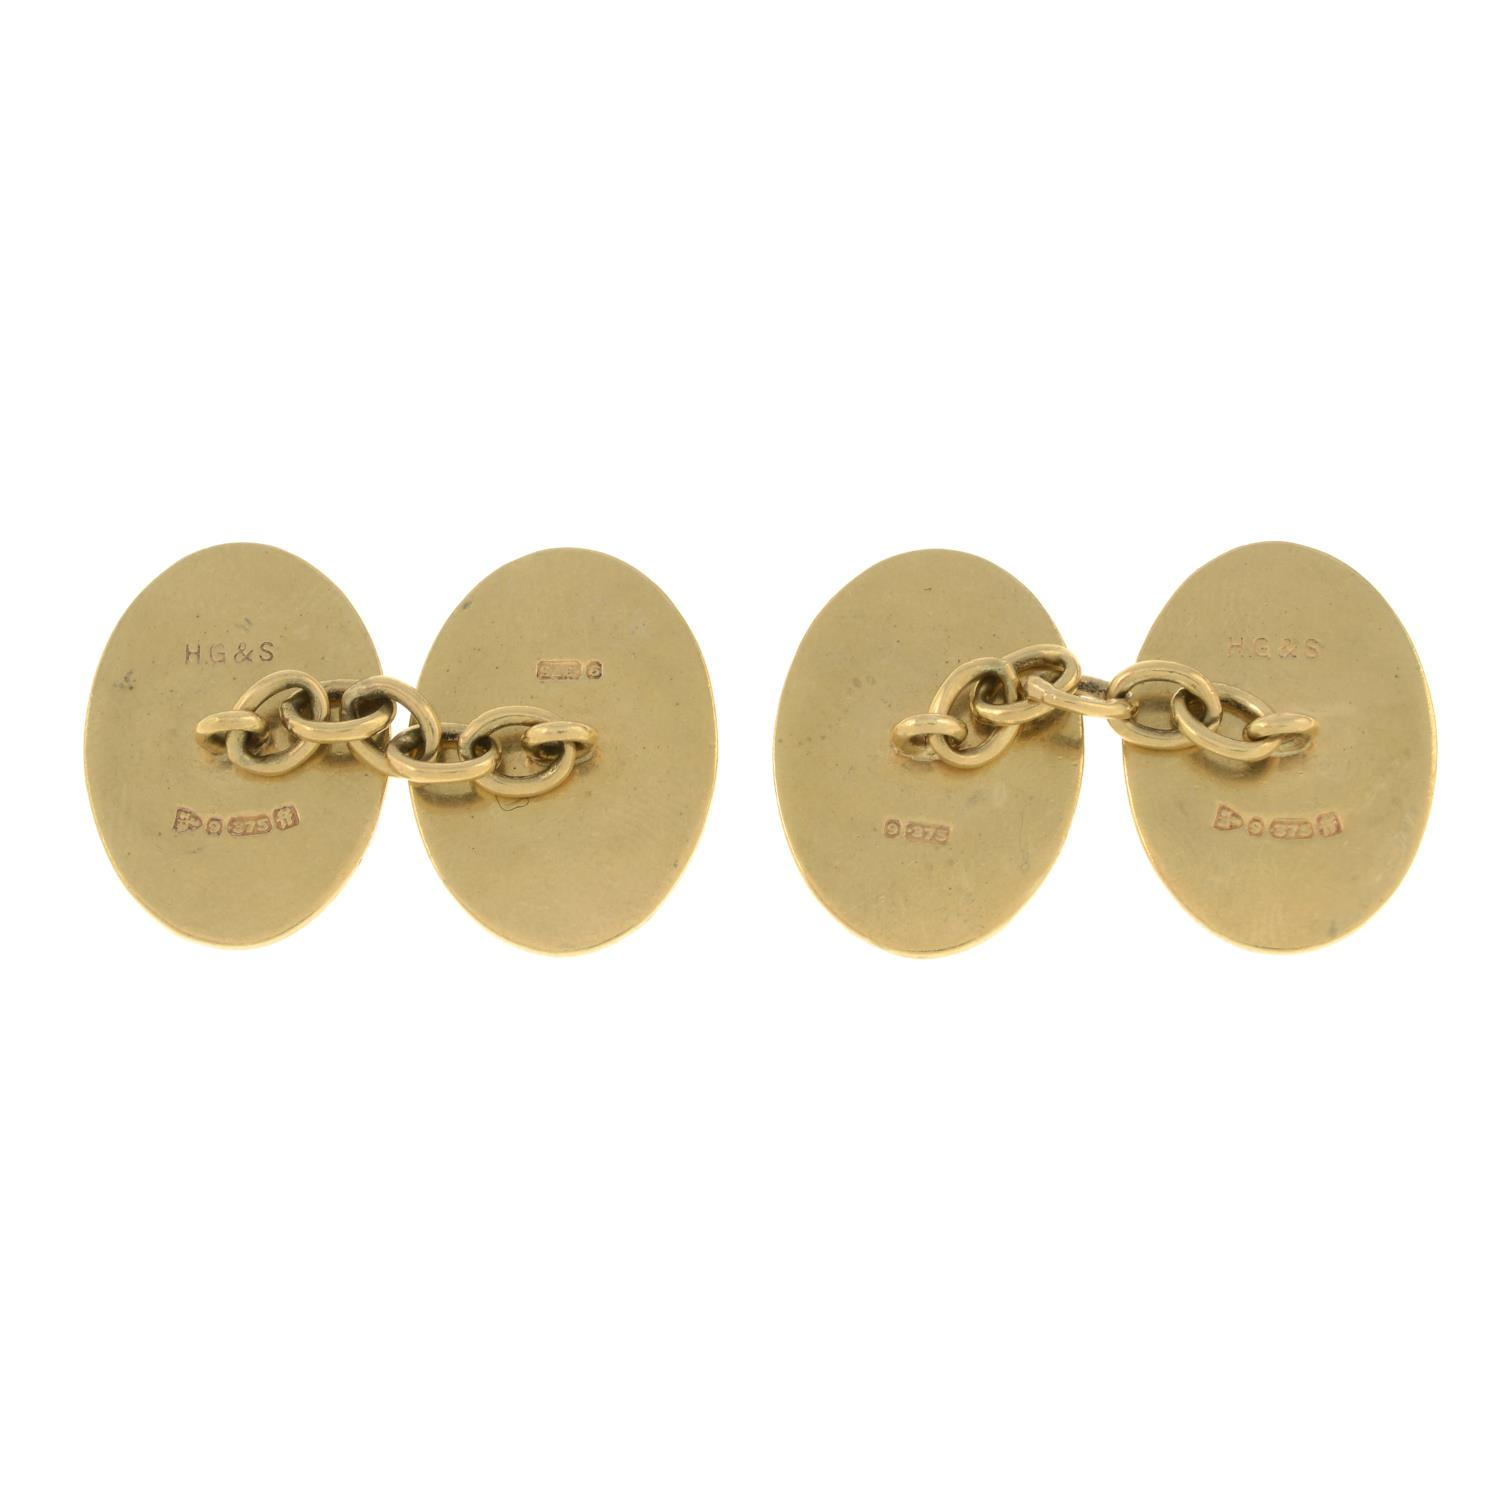 A pair of mid 19th century 9ct gold cufflinks.Hallmarks for Sheffield.Length of cufflink face - Image 2 of 2